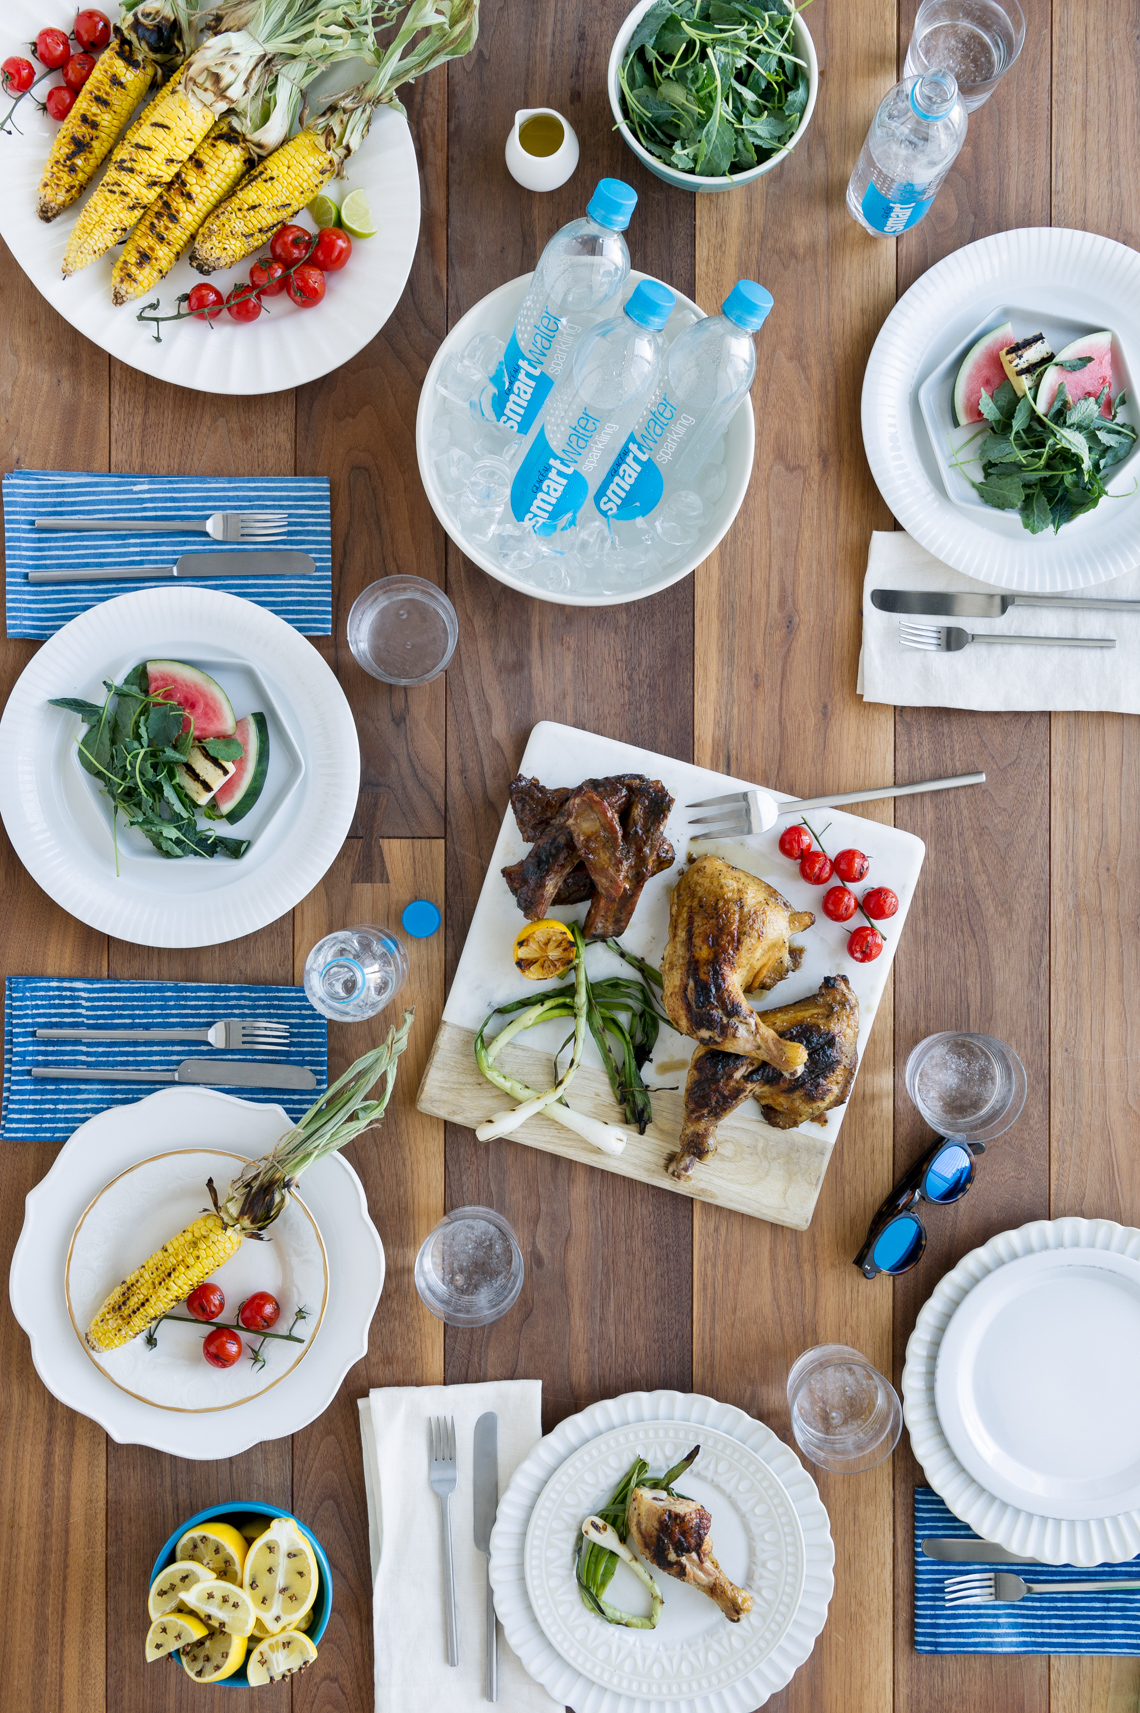 NYC Commercial Food Photographer - Smartwater 1